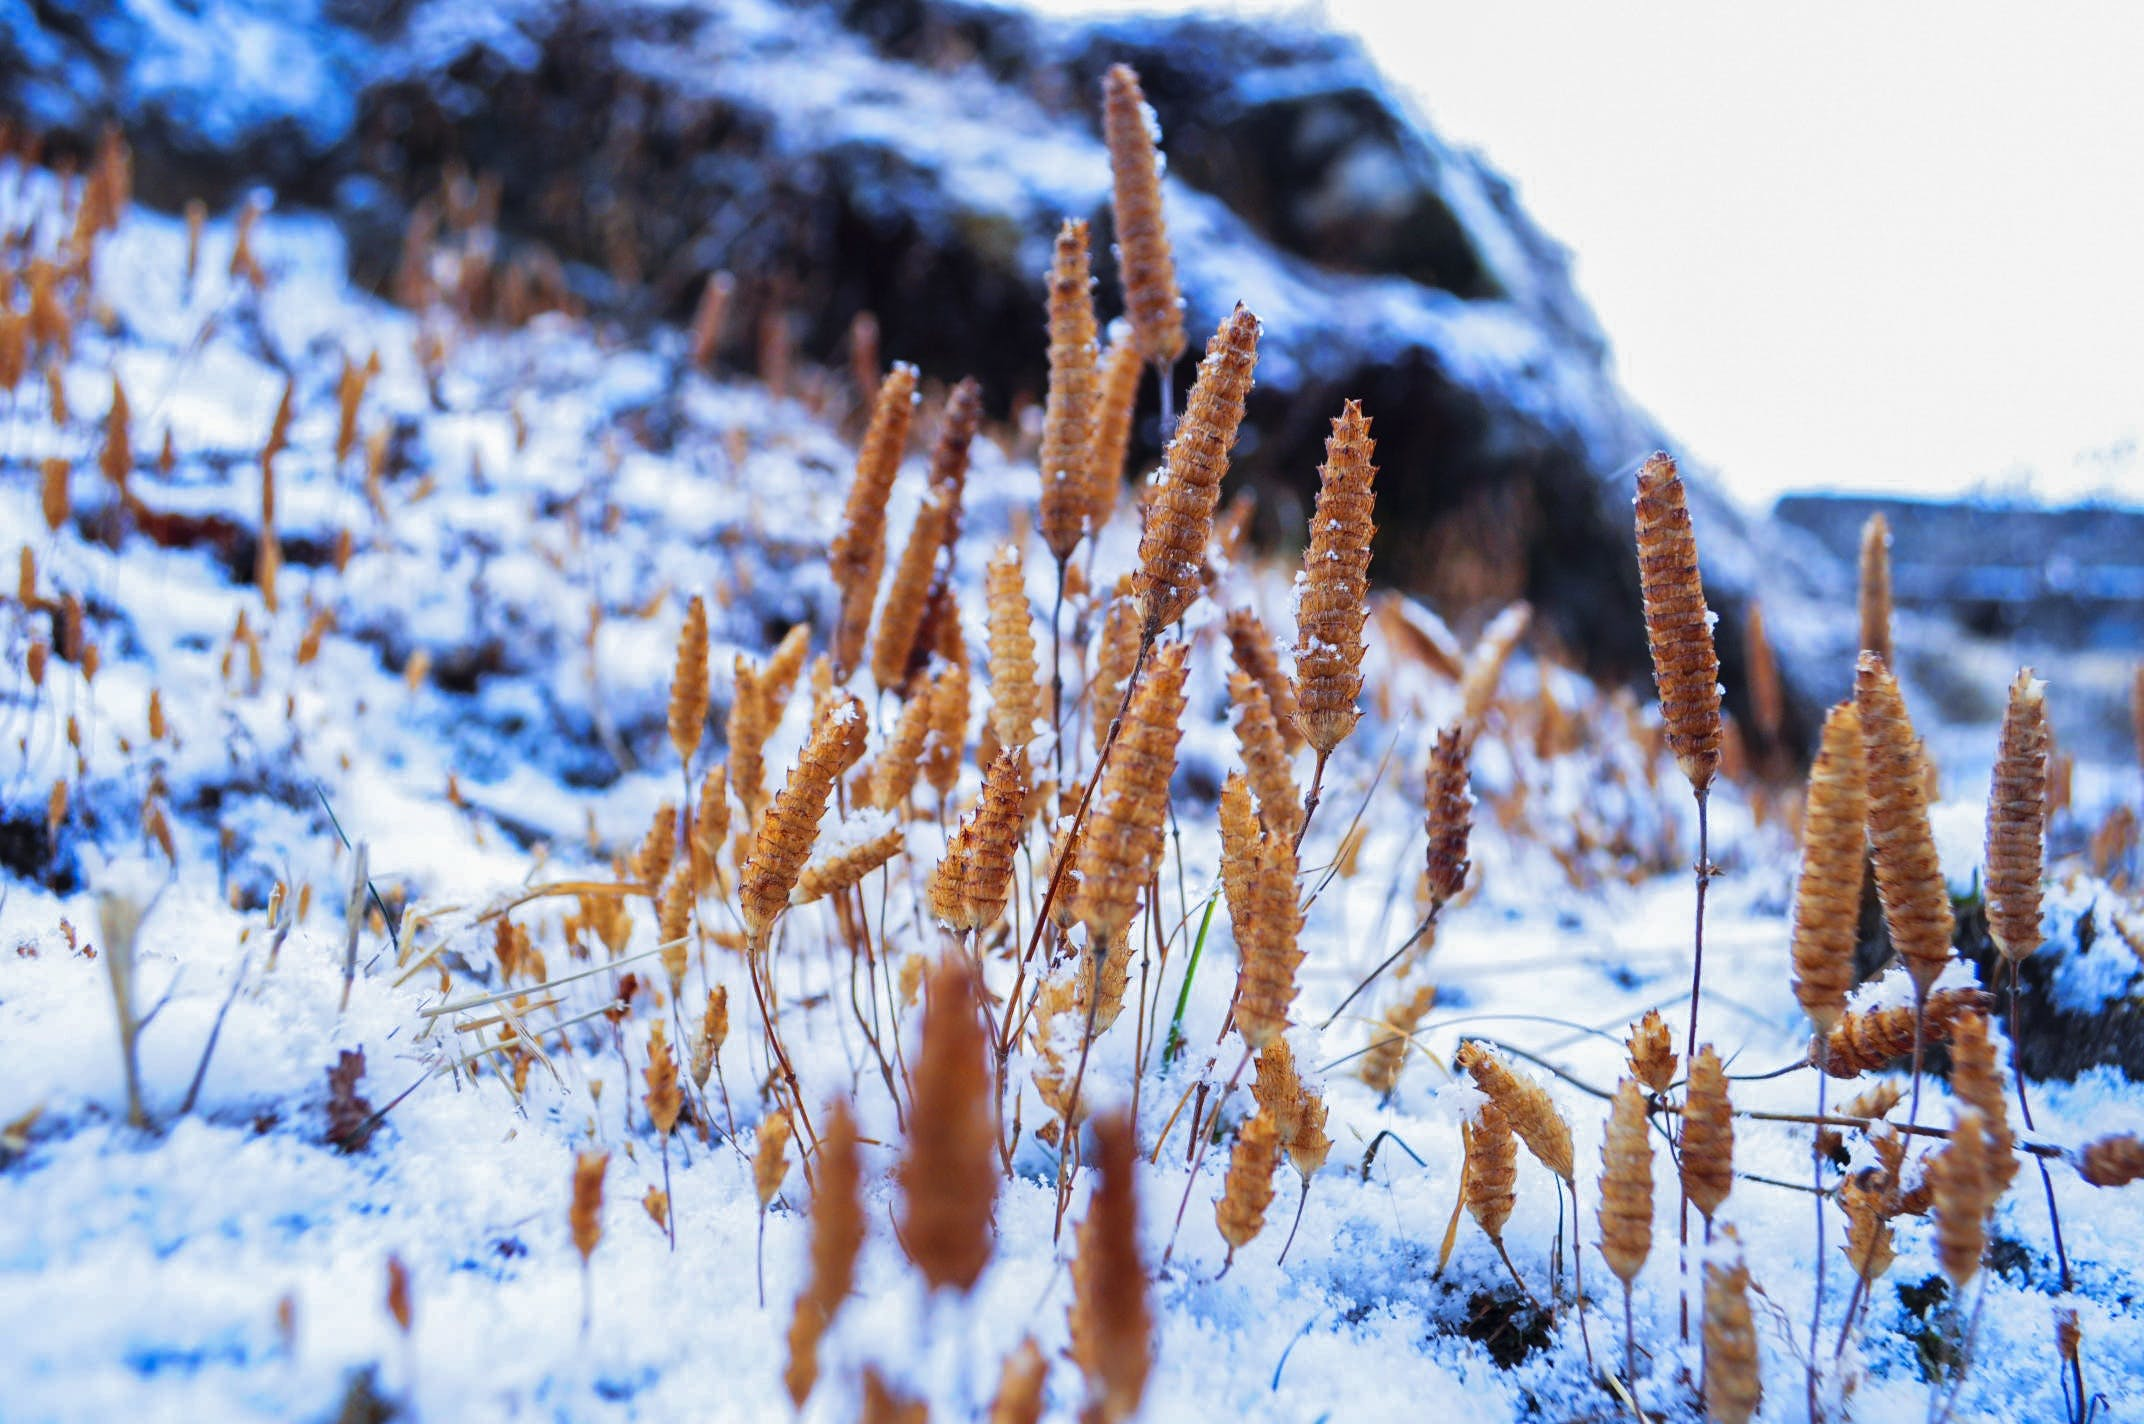 Gratis stockfoto met close-up, gras, kou, sneeuw